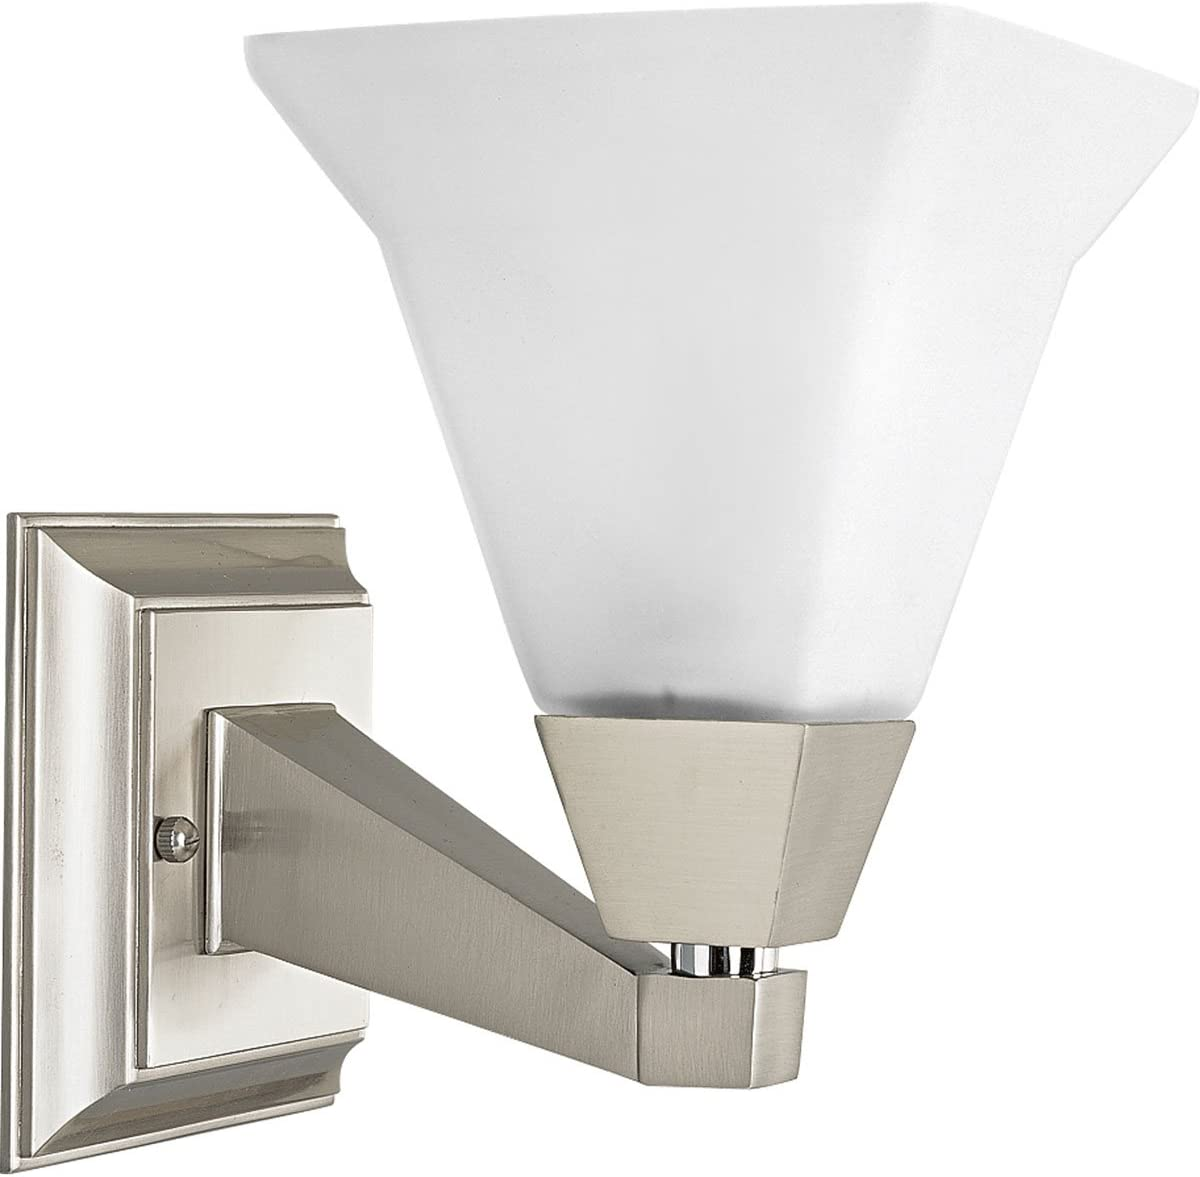 Progress Lighting P3135-09 1-Light Bath Bracket Fixture, Brushed Nickel